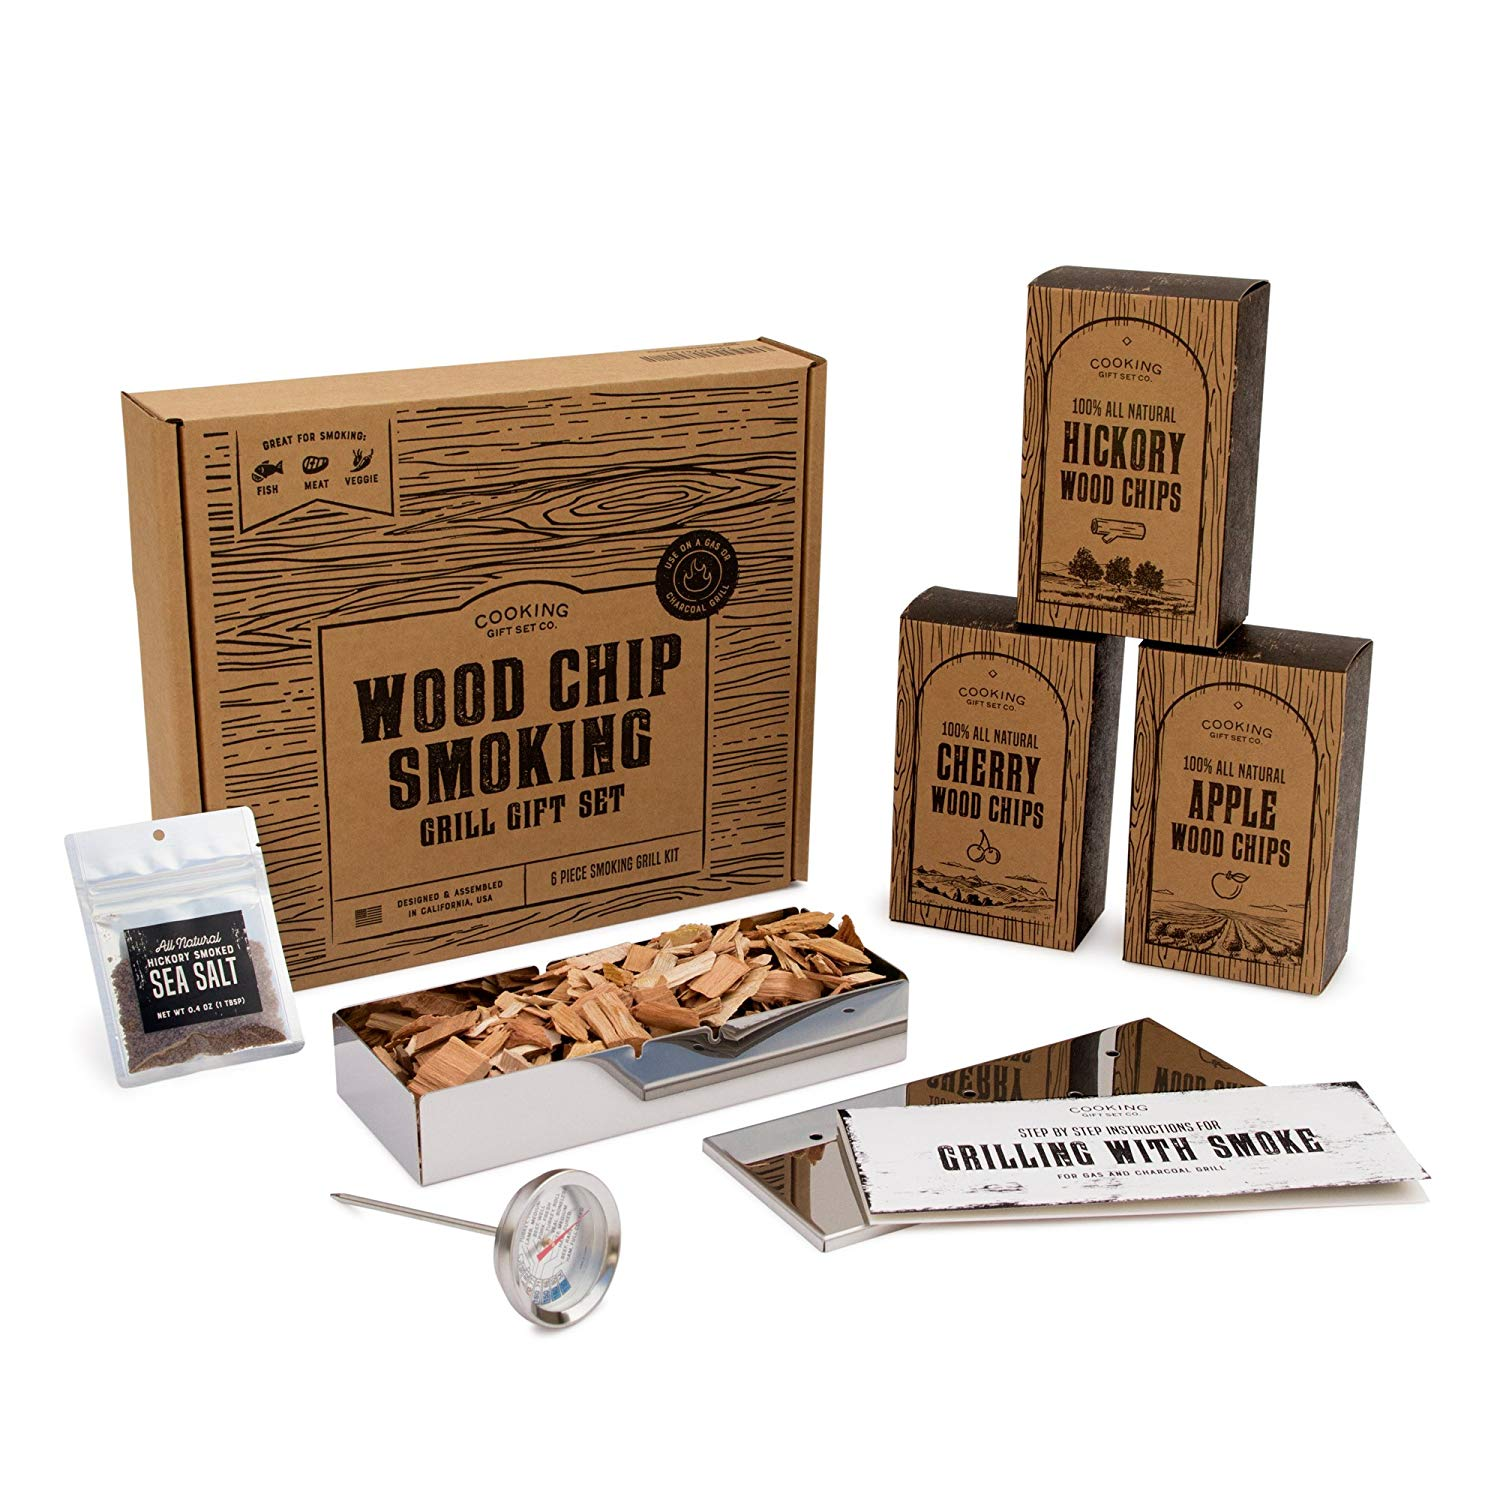 Cooking Gift Set | BBQ Smoker Wood Chip Grill Set $59.95